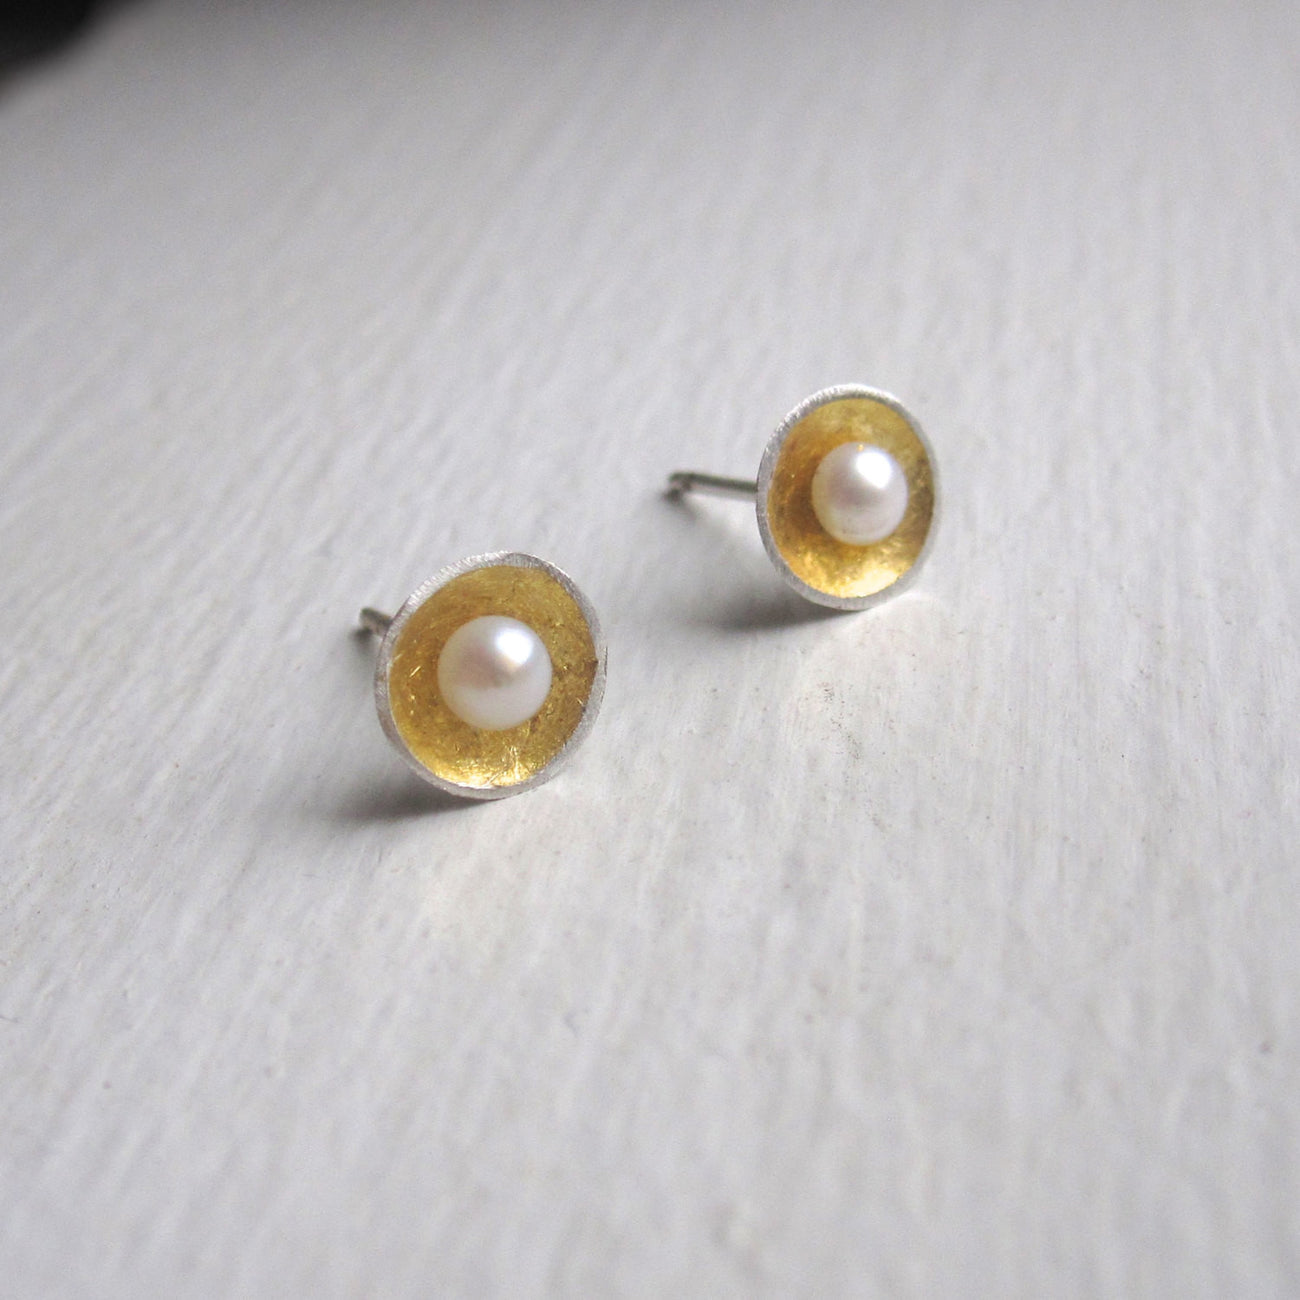 Contemporary Classic Pearl Earring Hand-Made Dome Circle Earrings w/ White Pearl Center - 0110 - Virginia Wynne Designs